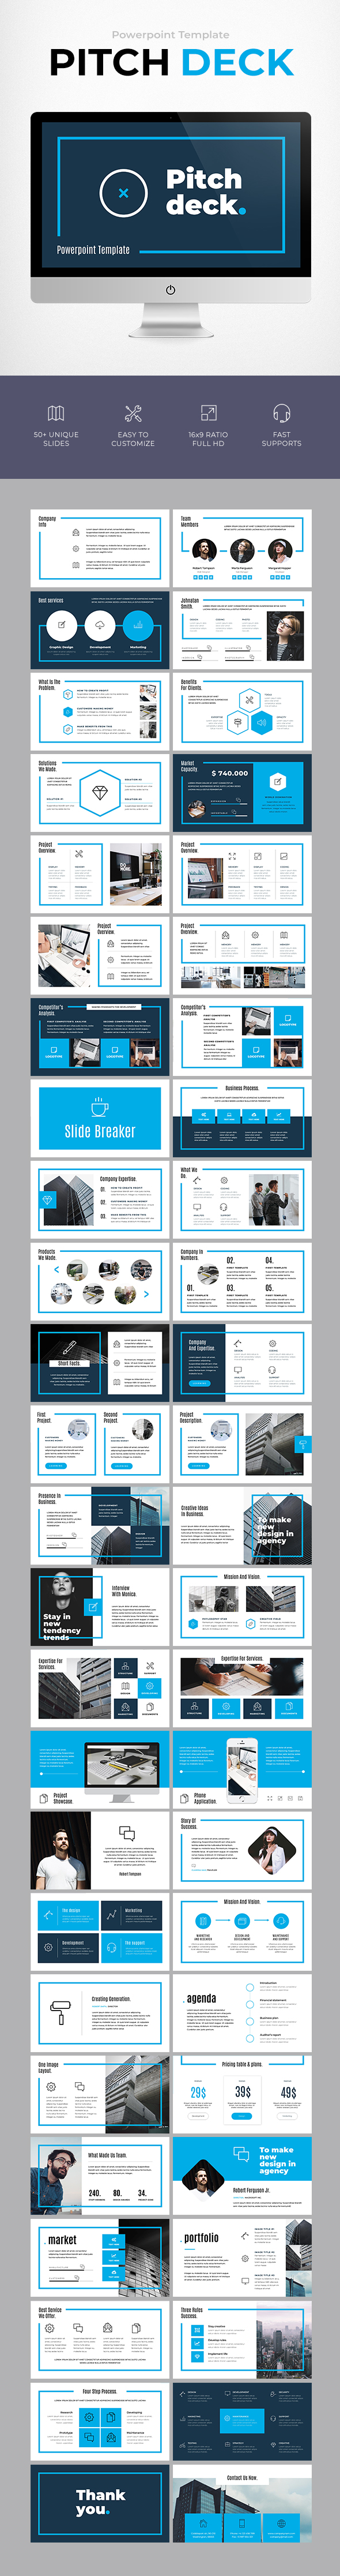 Pitch deck template by becreative graphicriver pitch deck template business powerpoint templates flashek Image collections